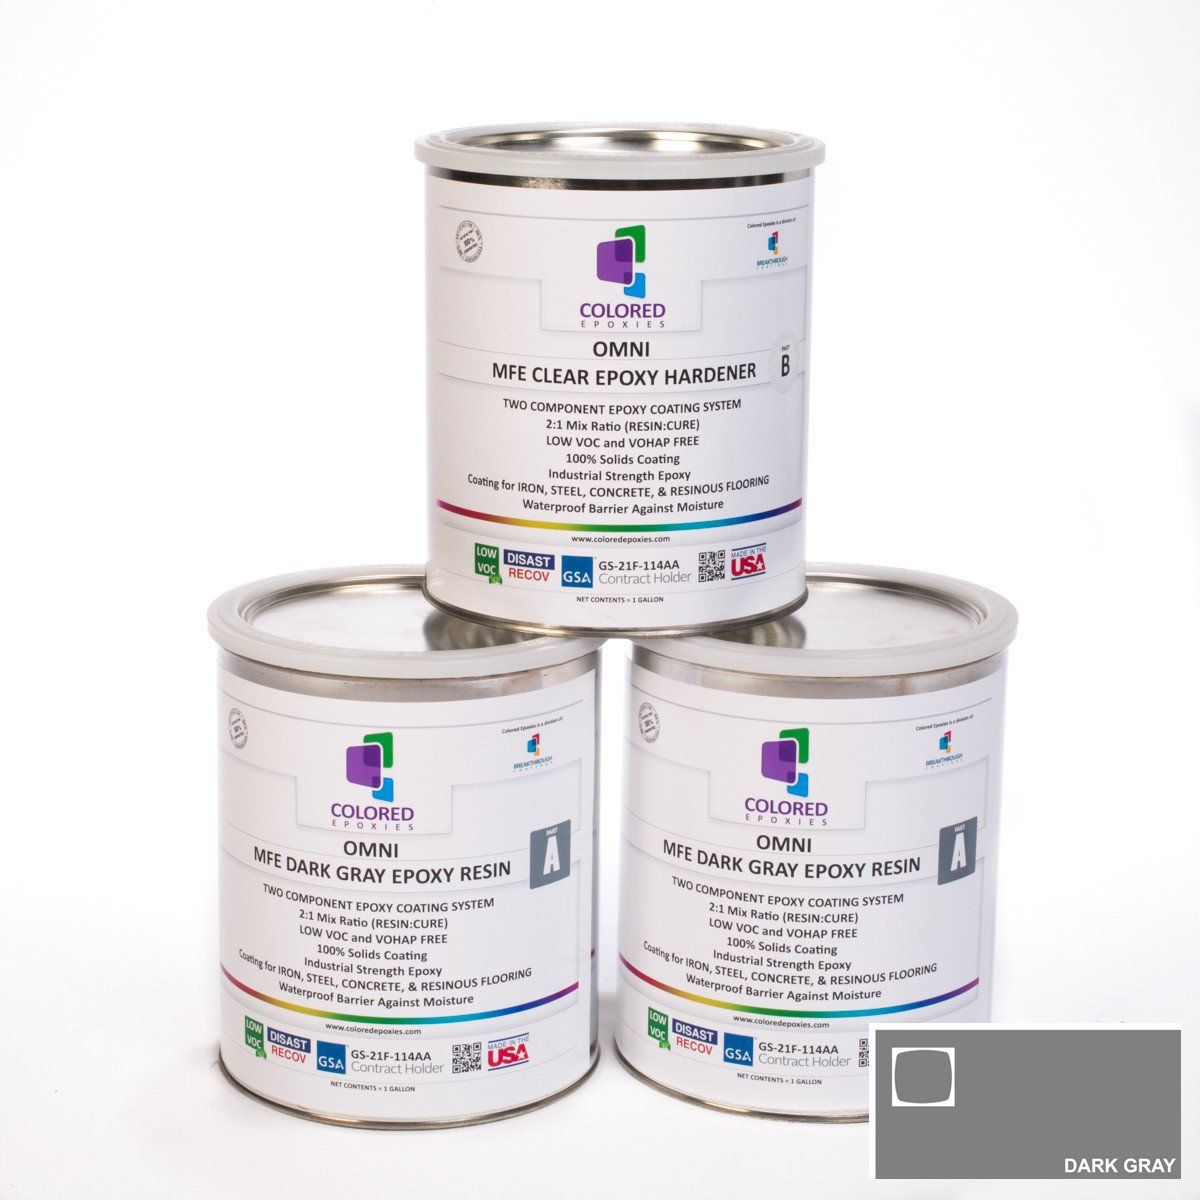 Colored Epoxy Resin Kit Colored epoxy, Colored epoxy